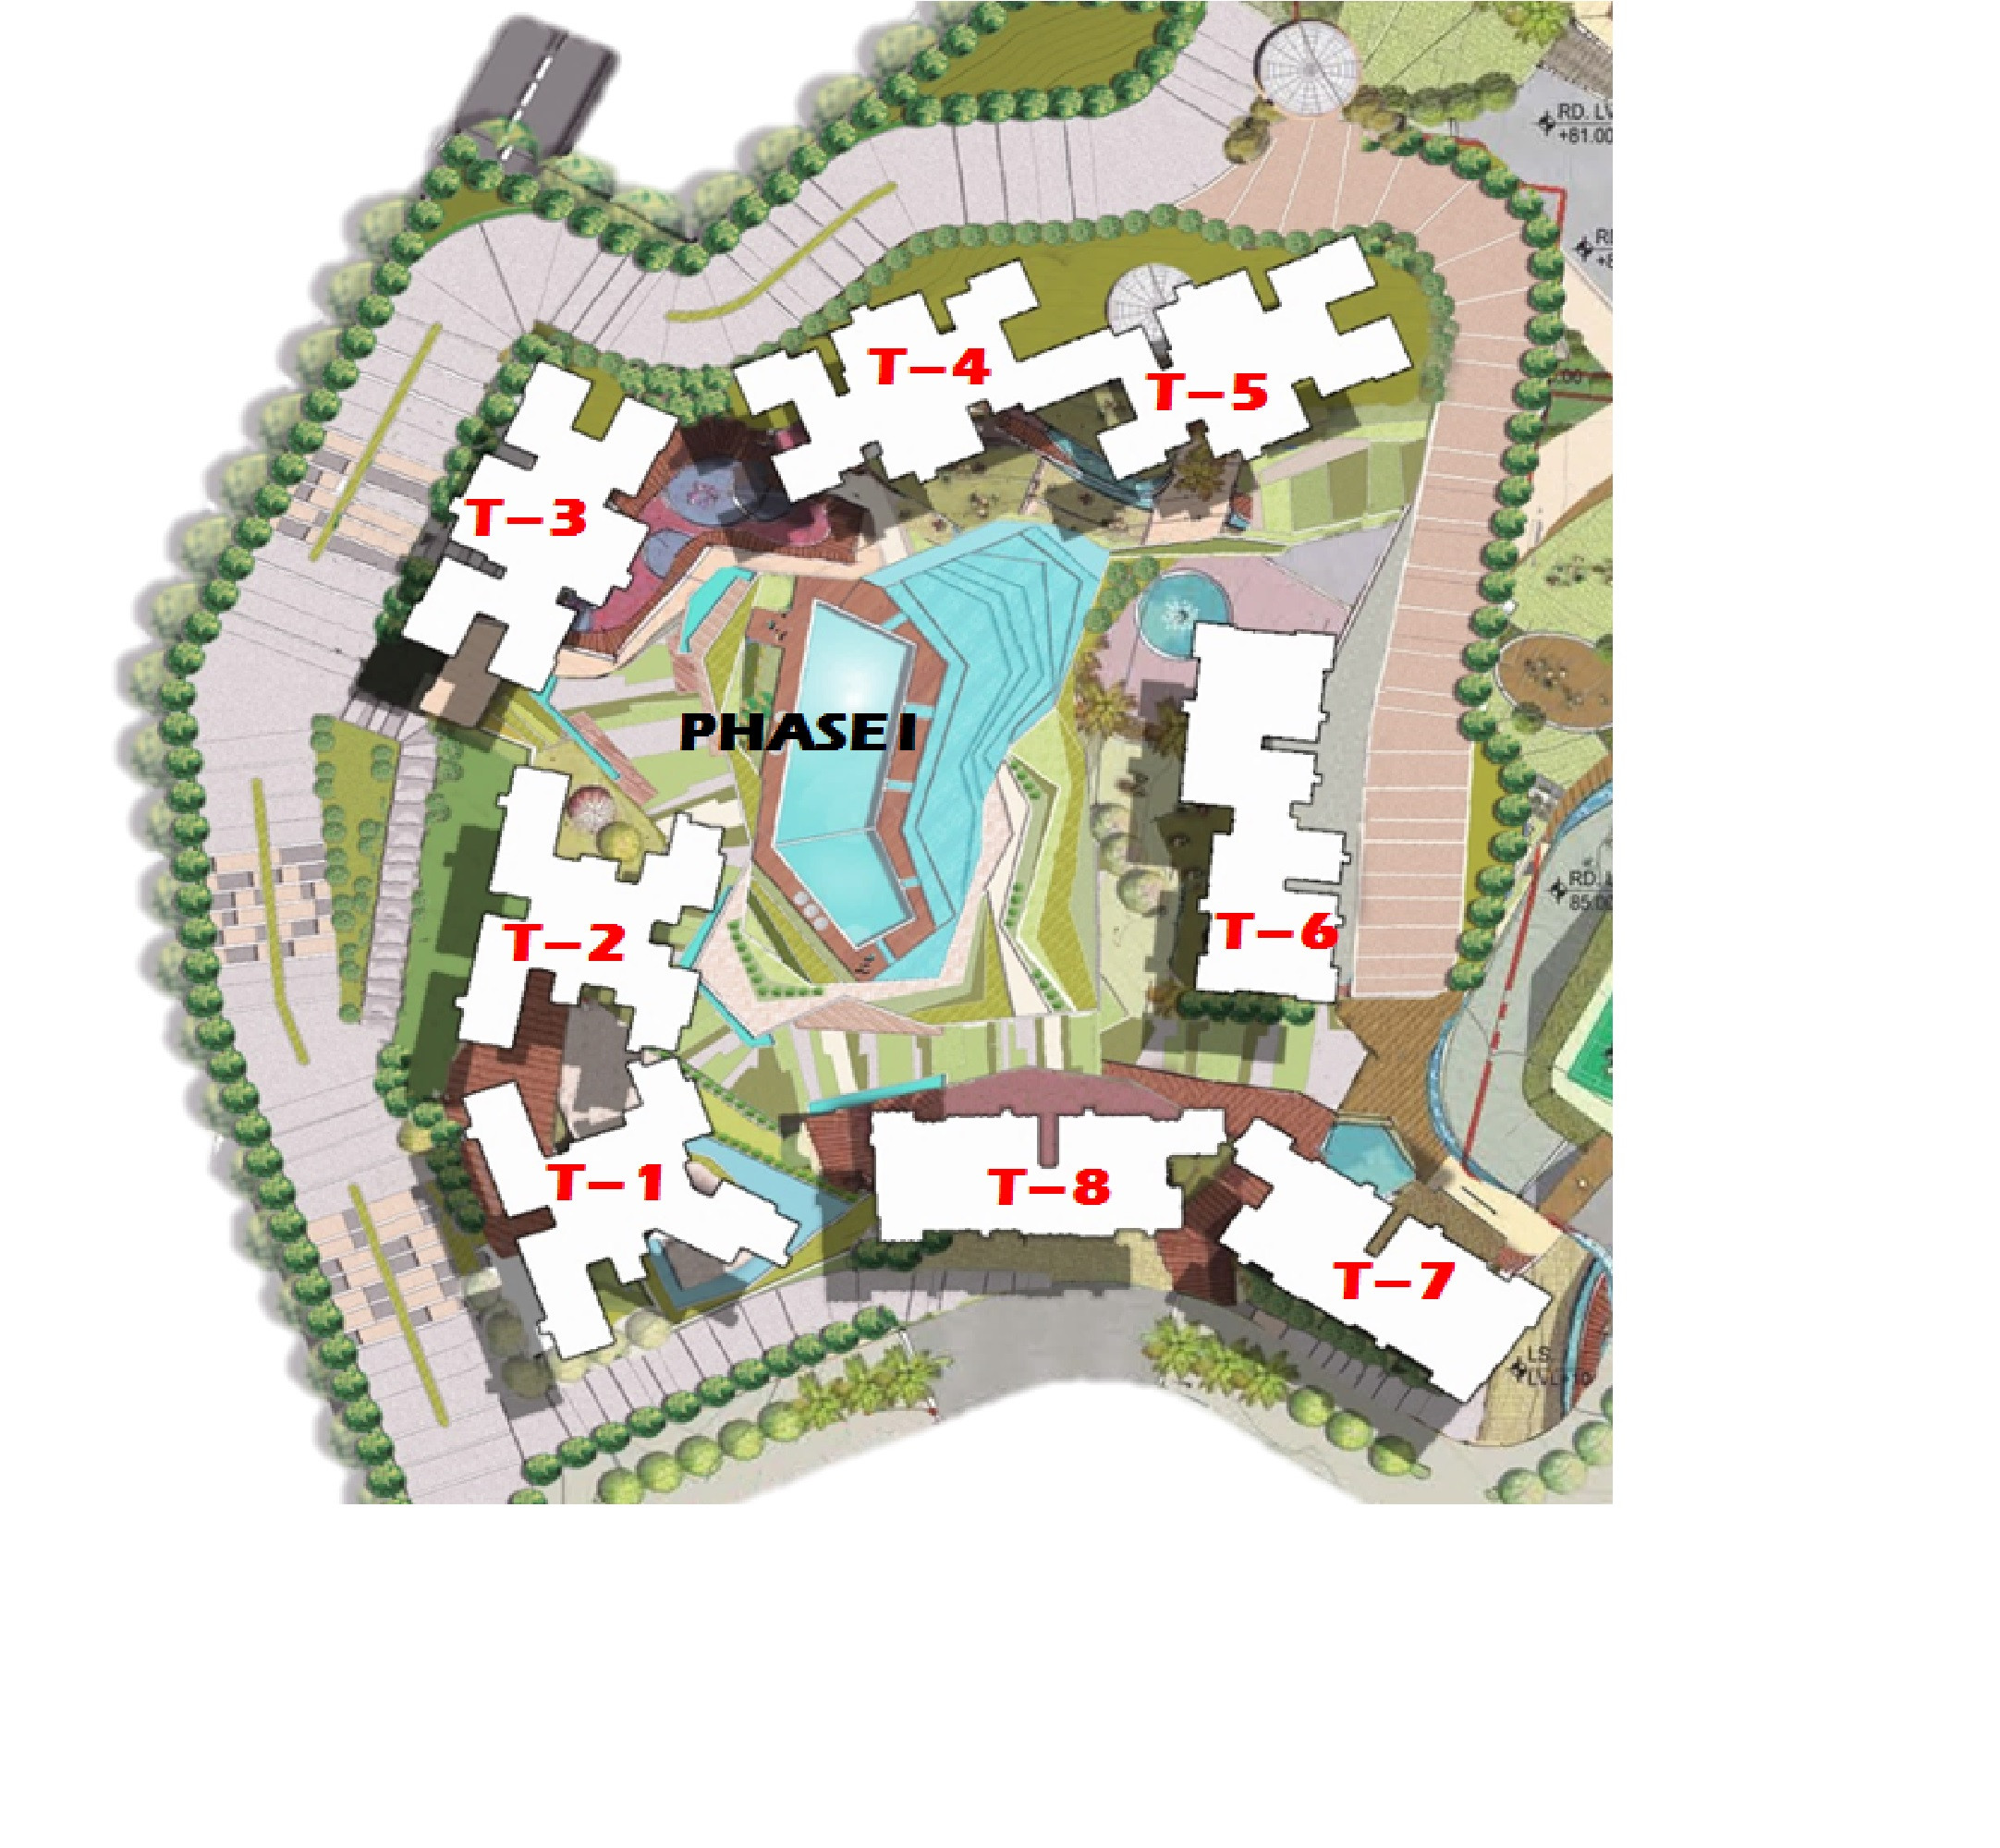 radius project central park master plan image1